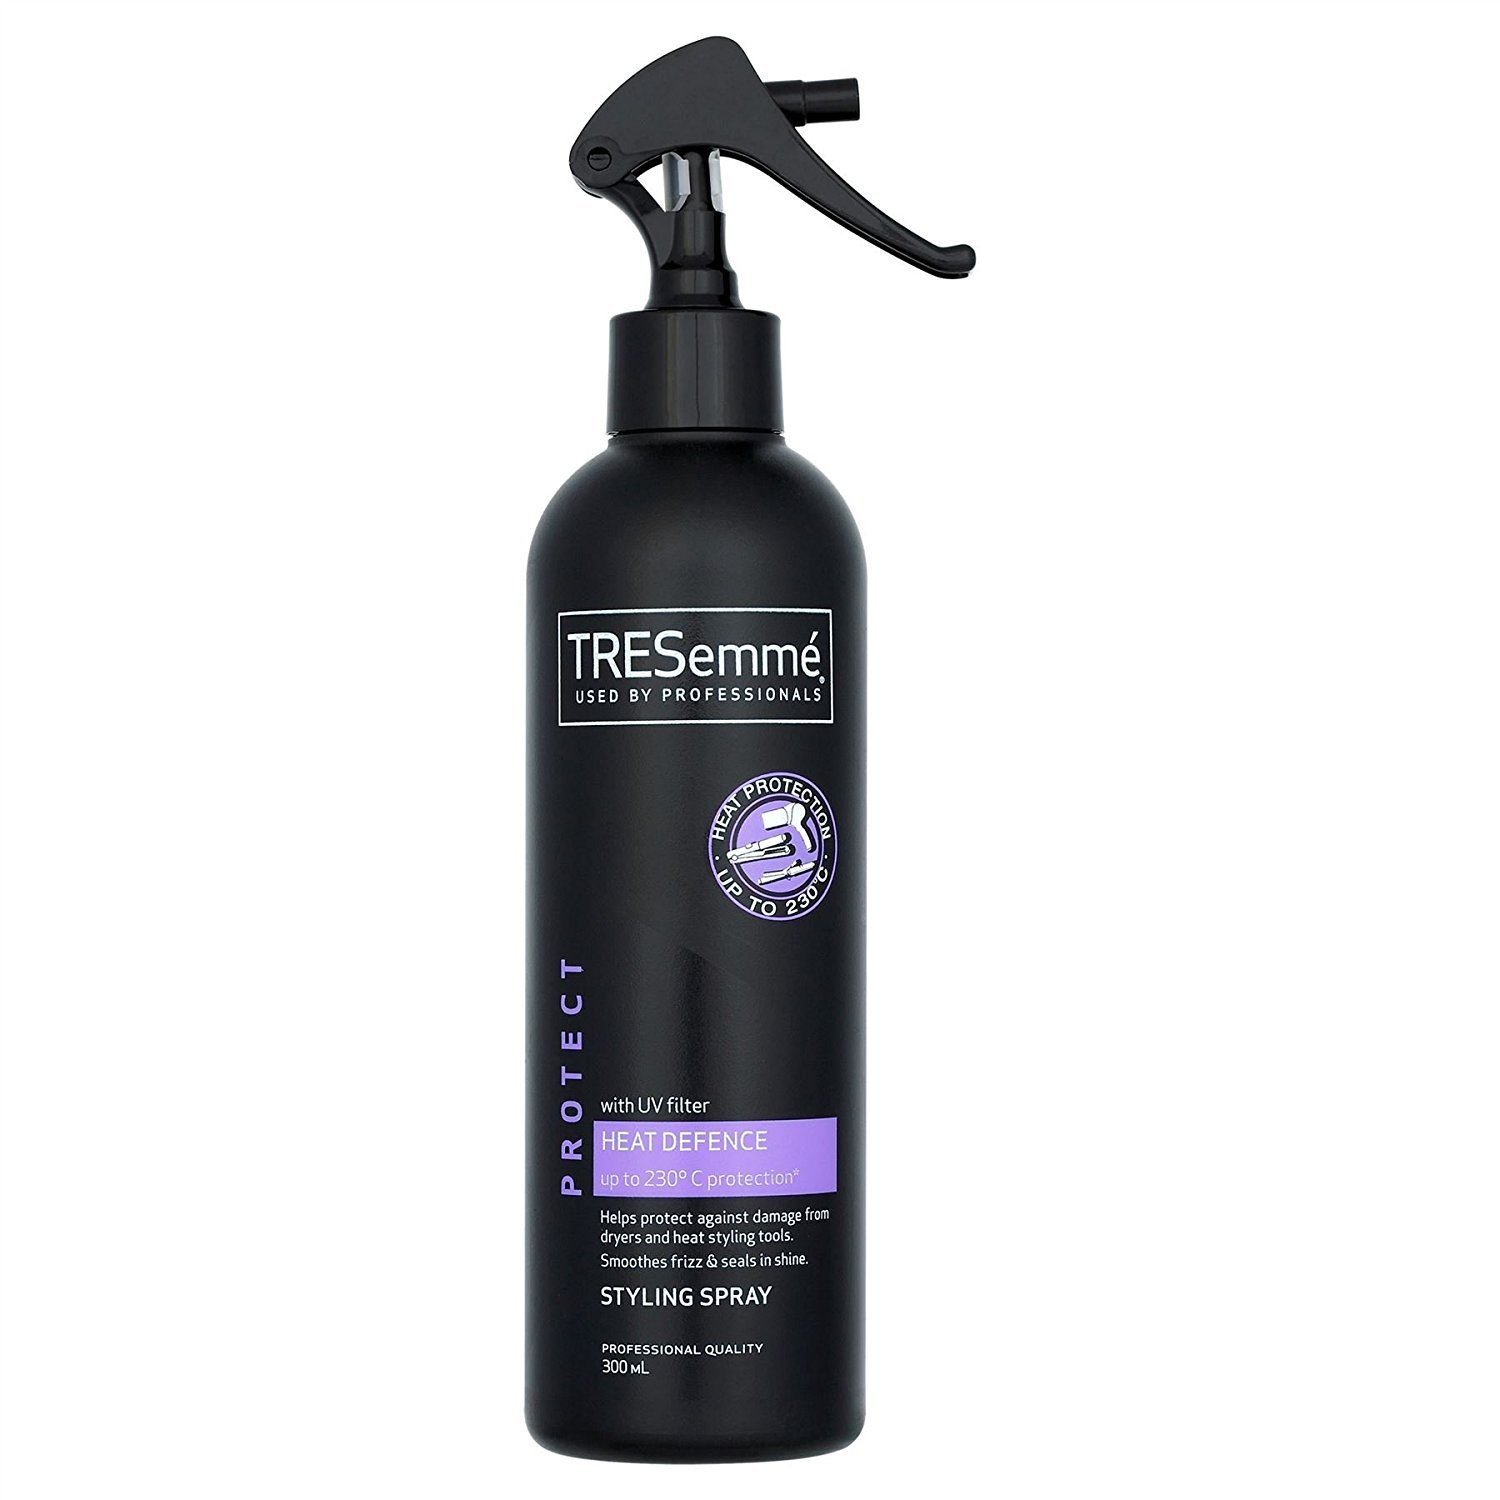 TRESemme Protect Heat Defence Styling Spray, 300 ml, Pack of 3 Unilever 10001450